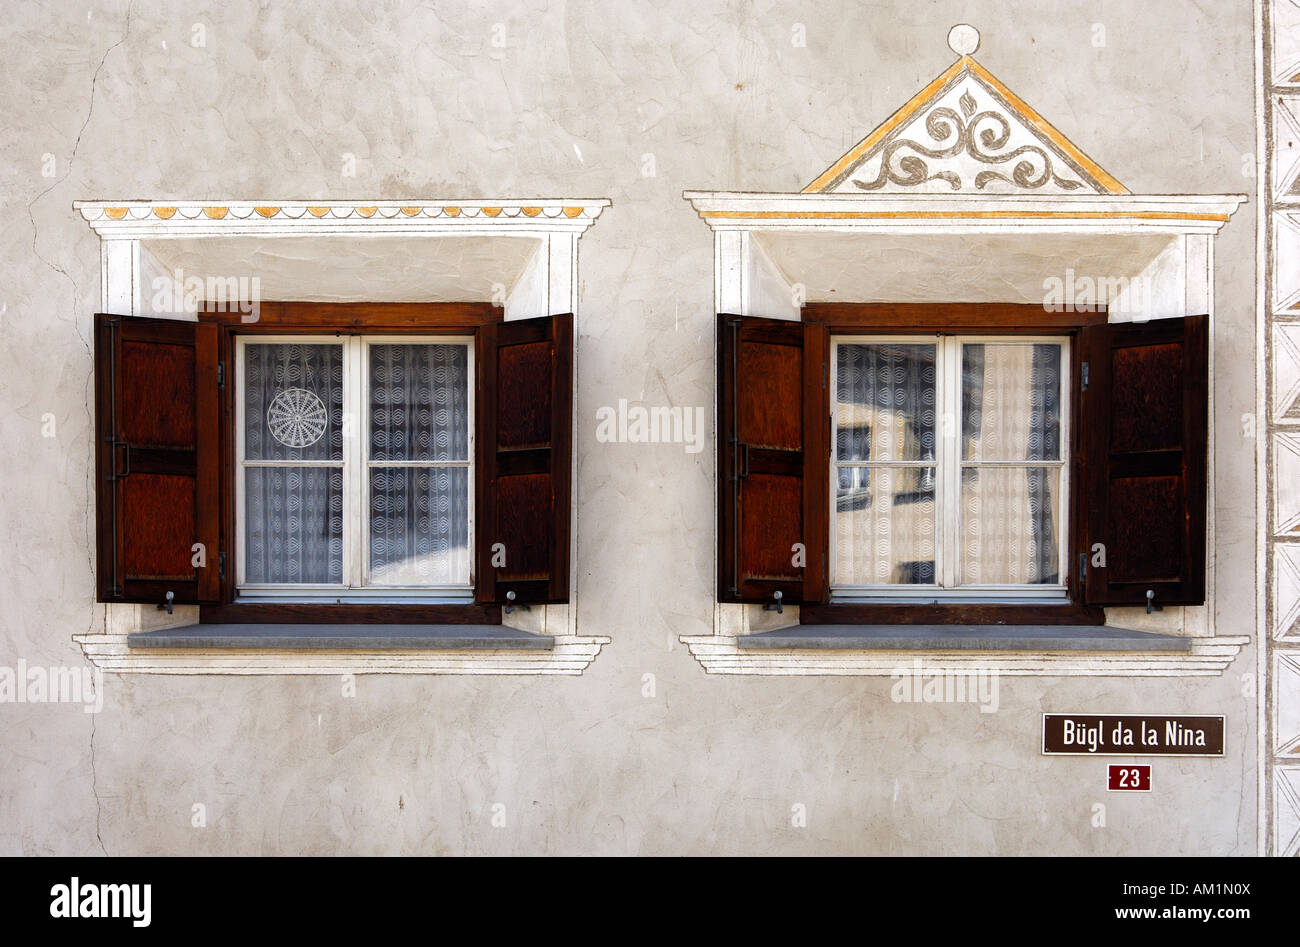 Windows of an Engadine house decorated with Sgraffito ornaments, Samedan, Engadin, Grisons, Switzerland Stock Photo